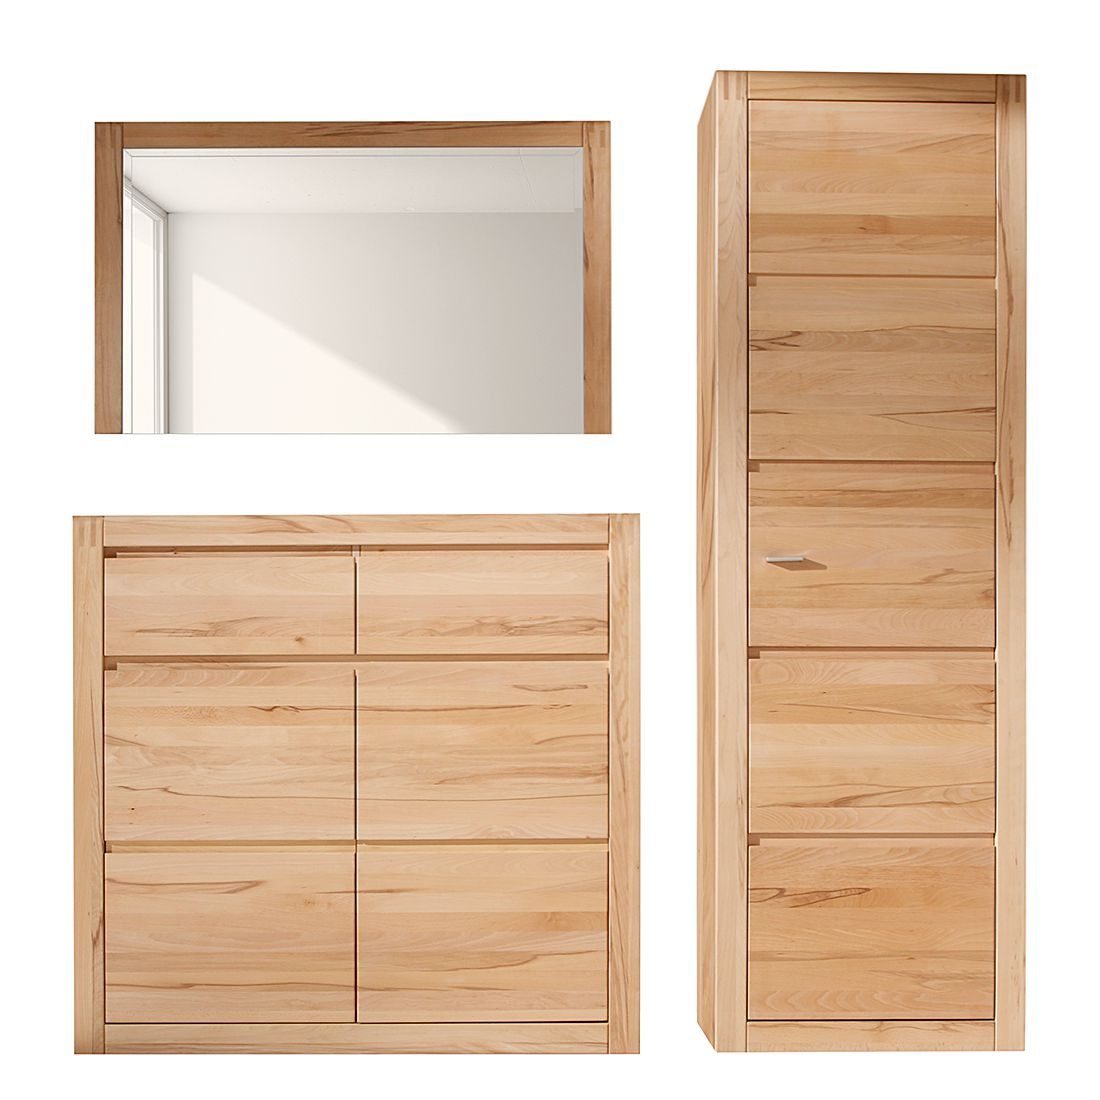 garderobe vigo 3 teilig kernbuche teilmassiv ge lt gewachst. Black Bedroom Furniture Sets. Home Design Ideas